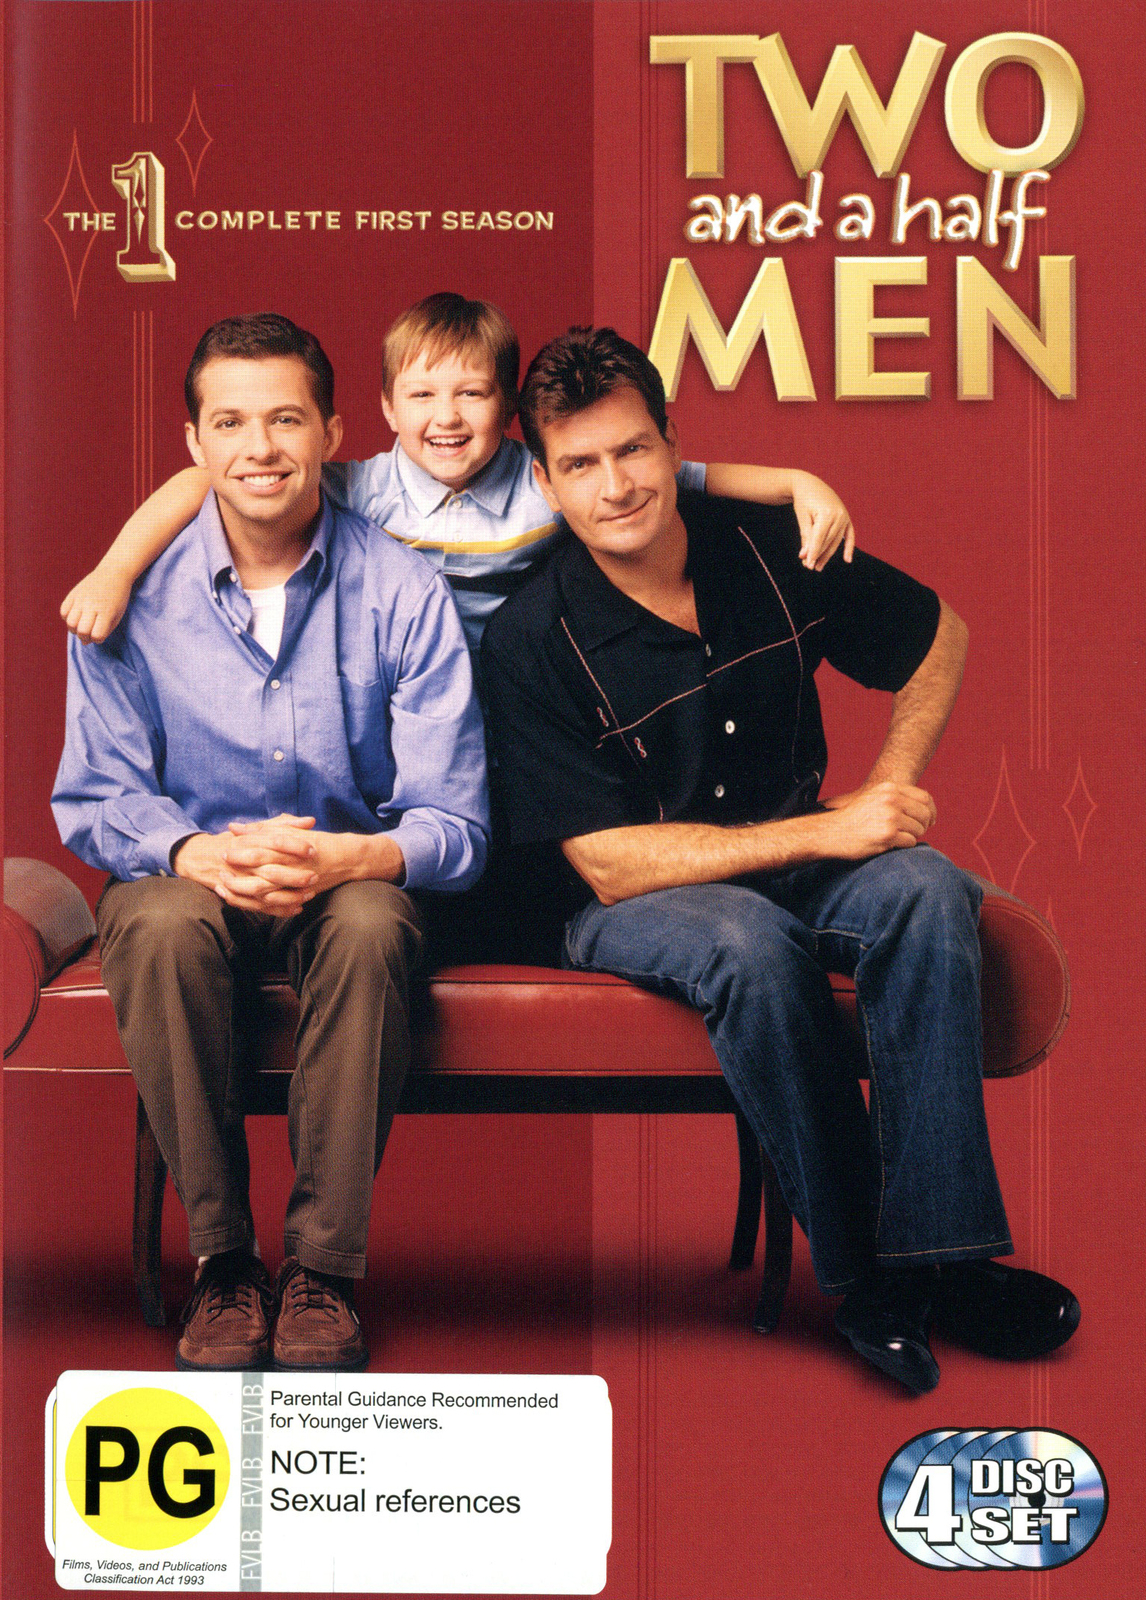 Two And A Half Men - The Complete First Season (4 Disc Box Set) on DVD image